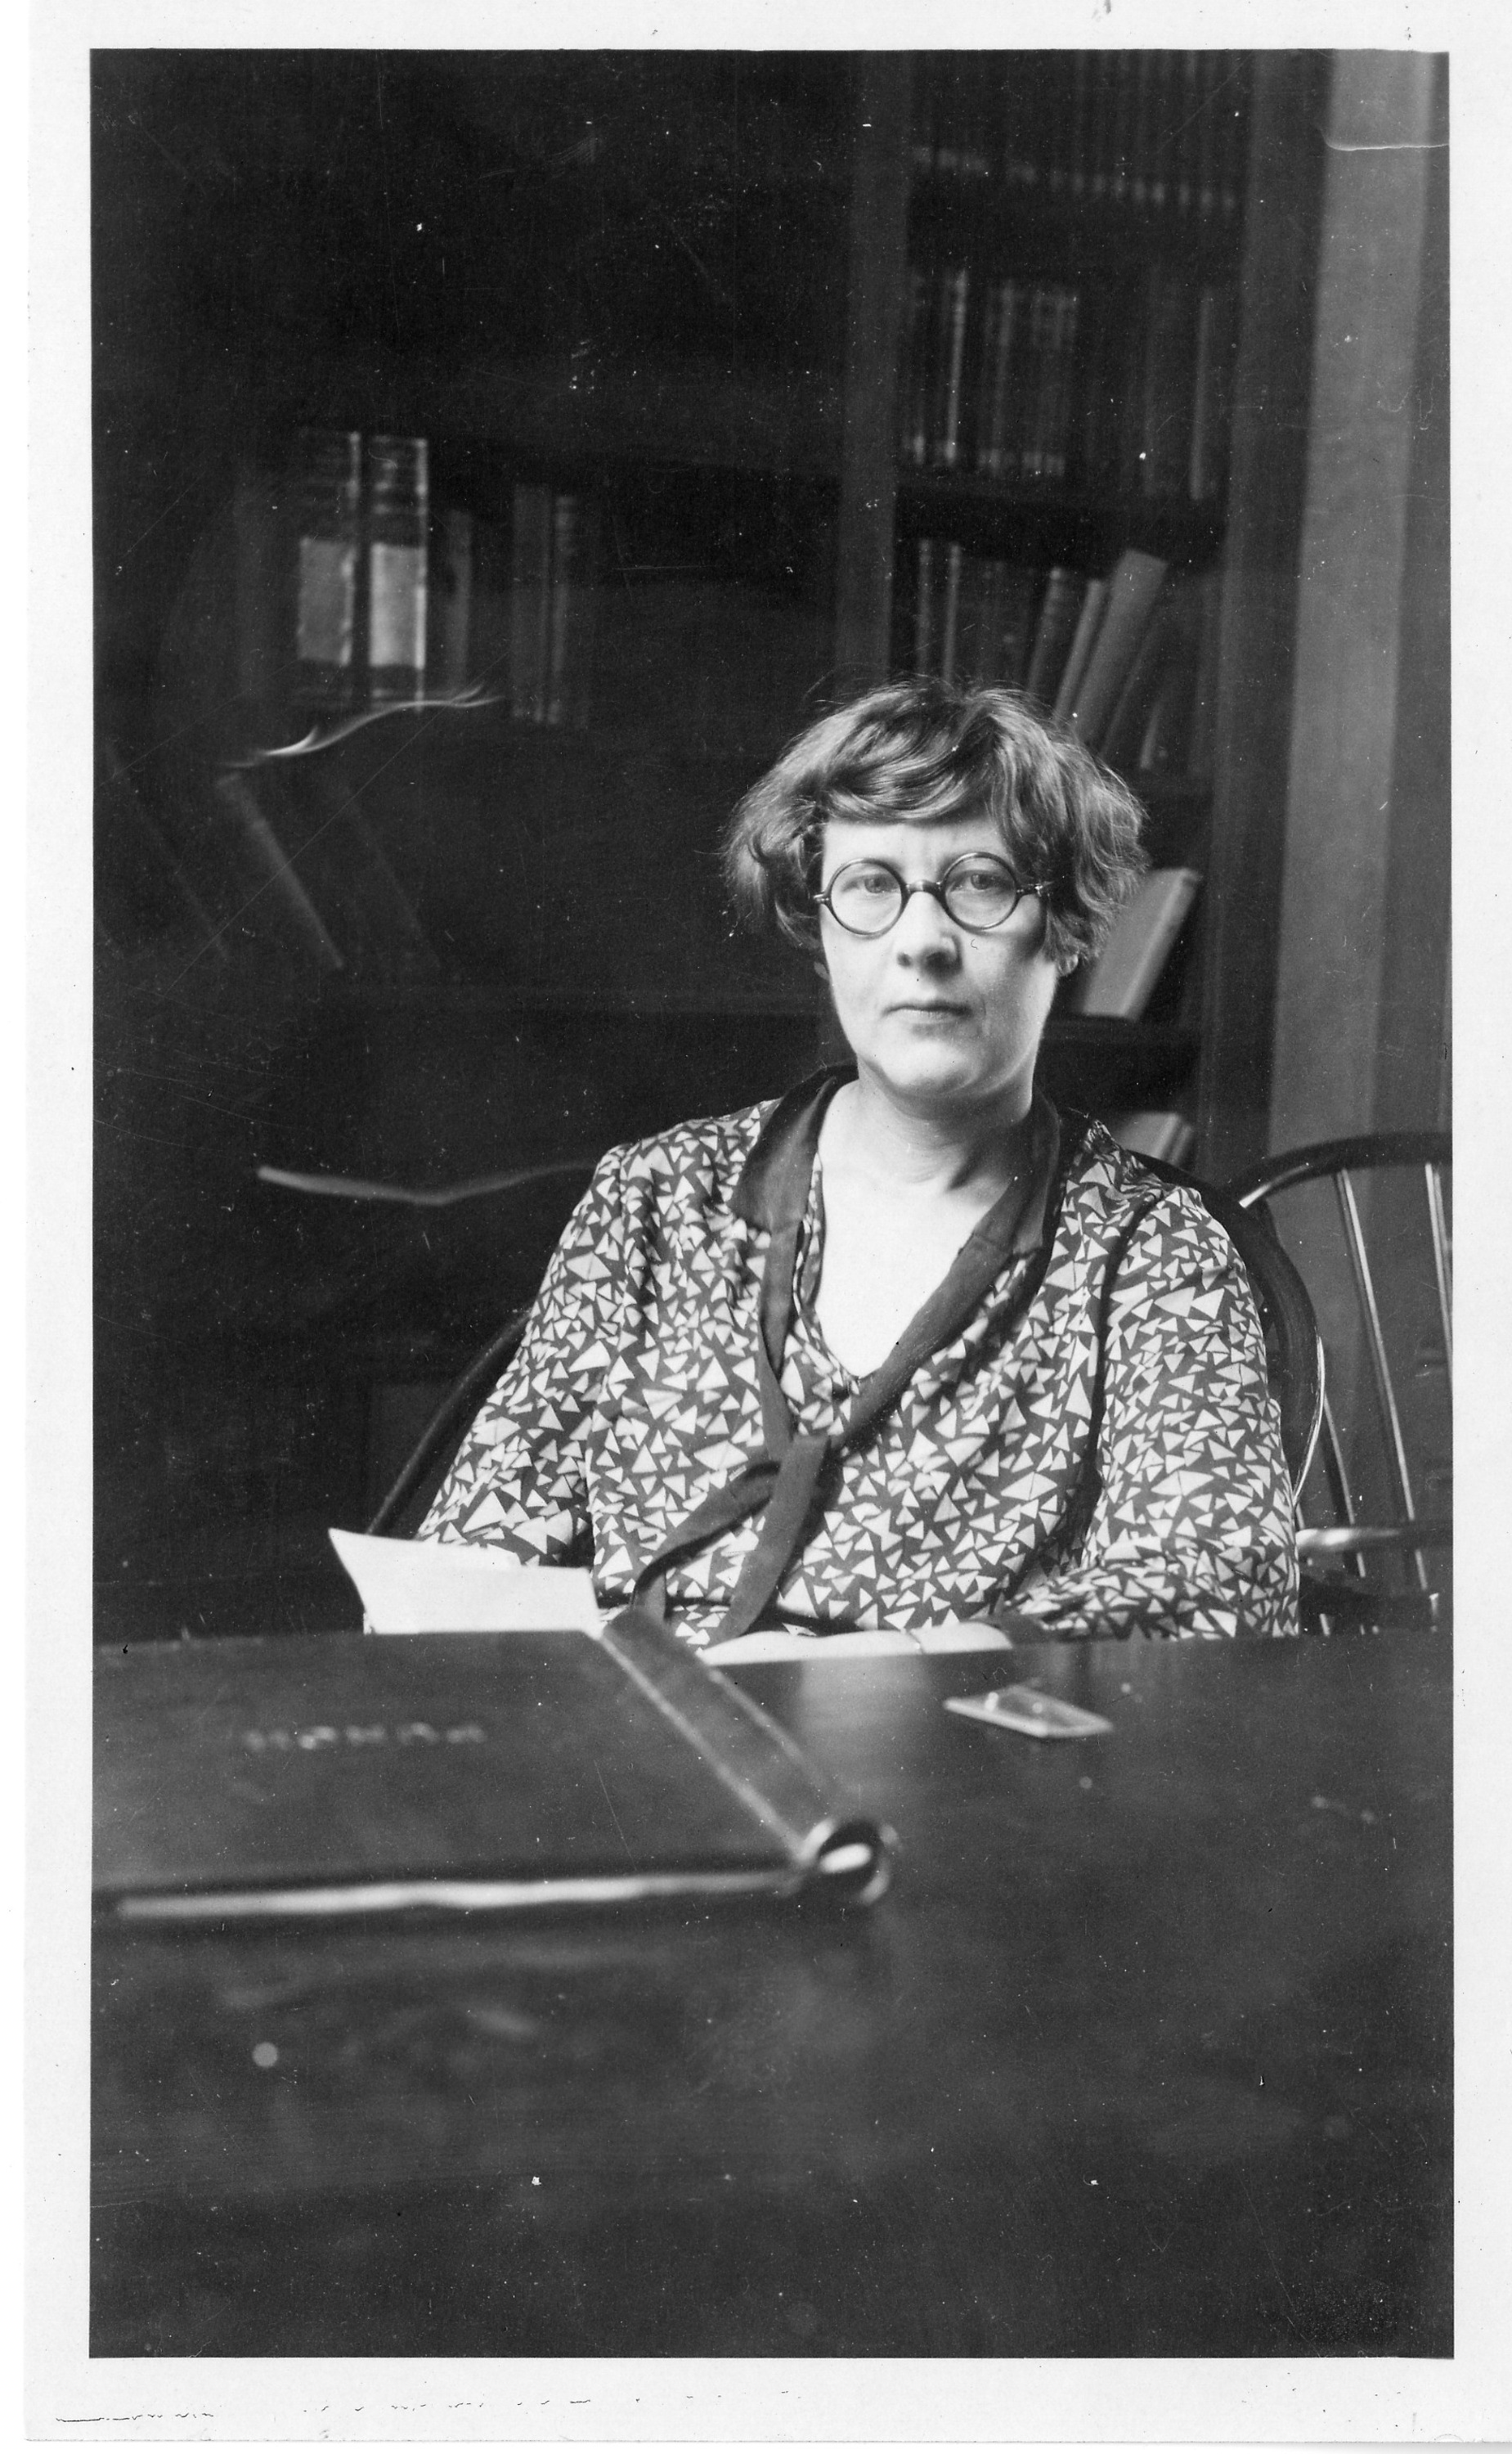 A woman with short hair and glasses sits at a desk. She has a book open.